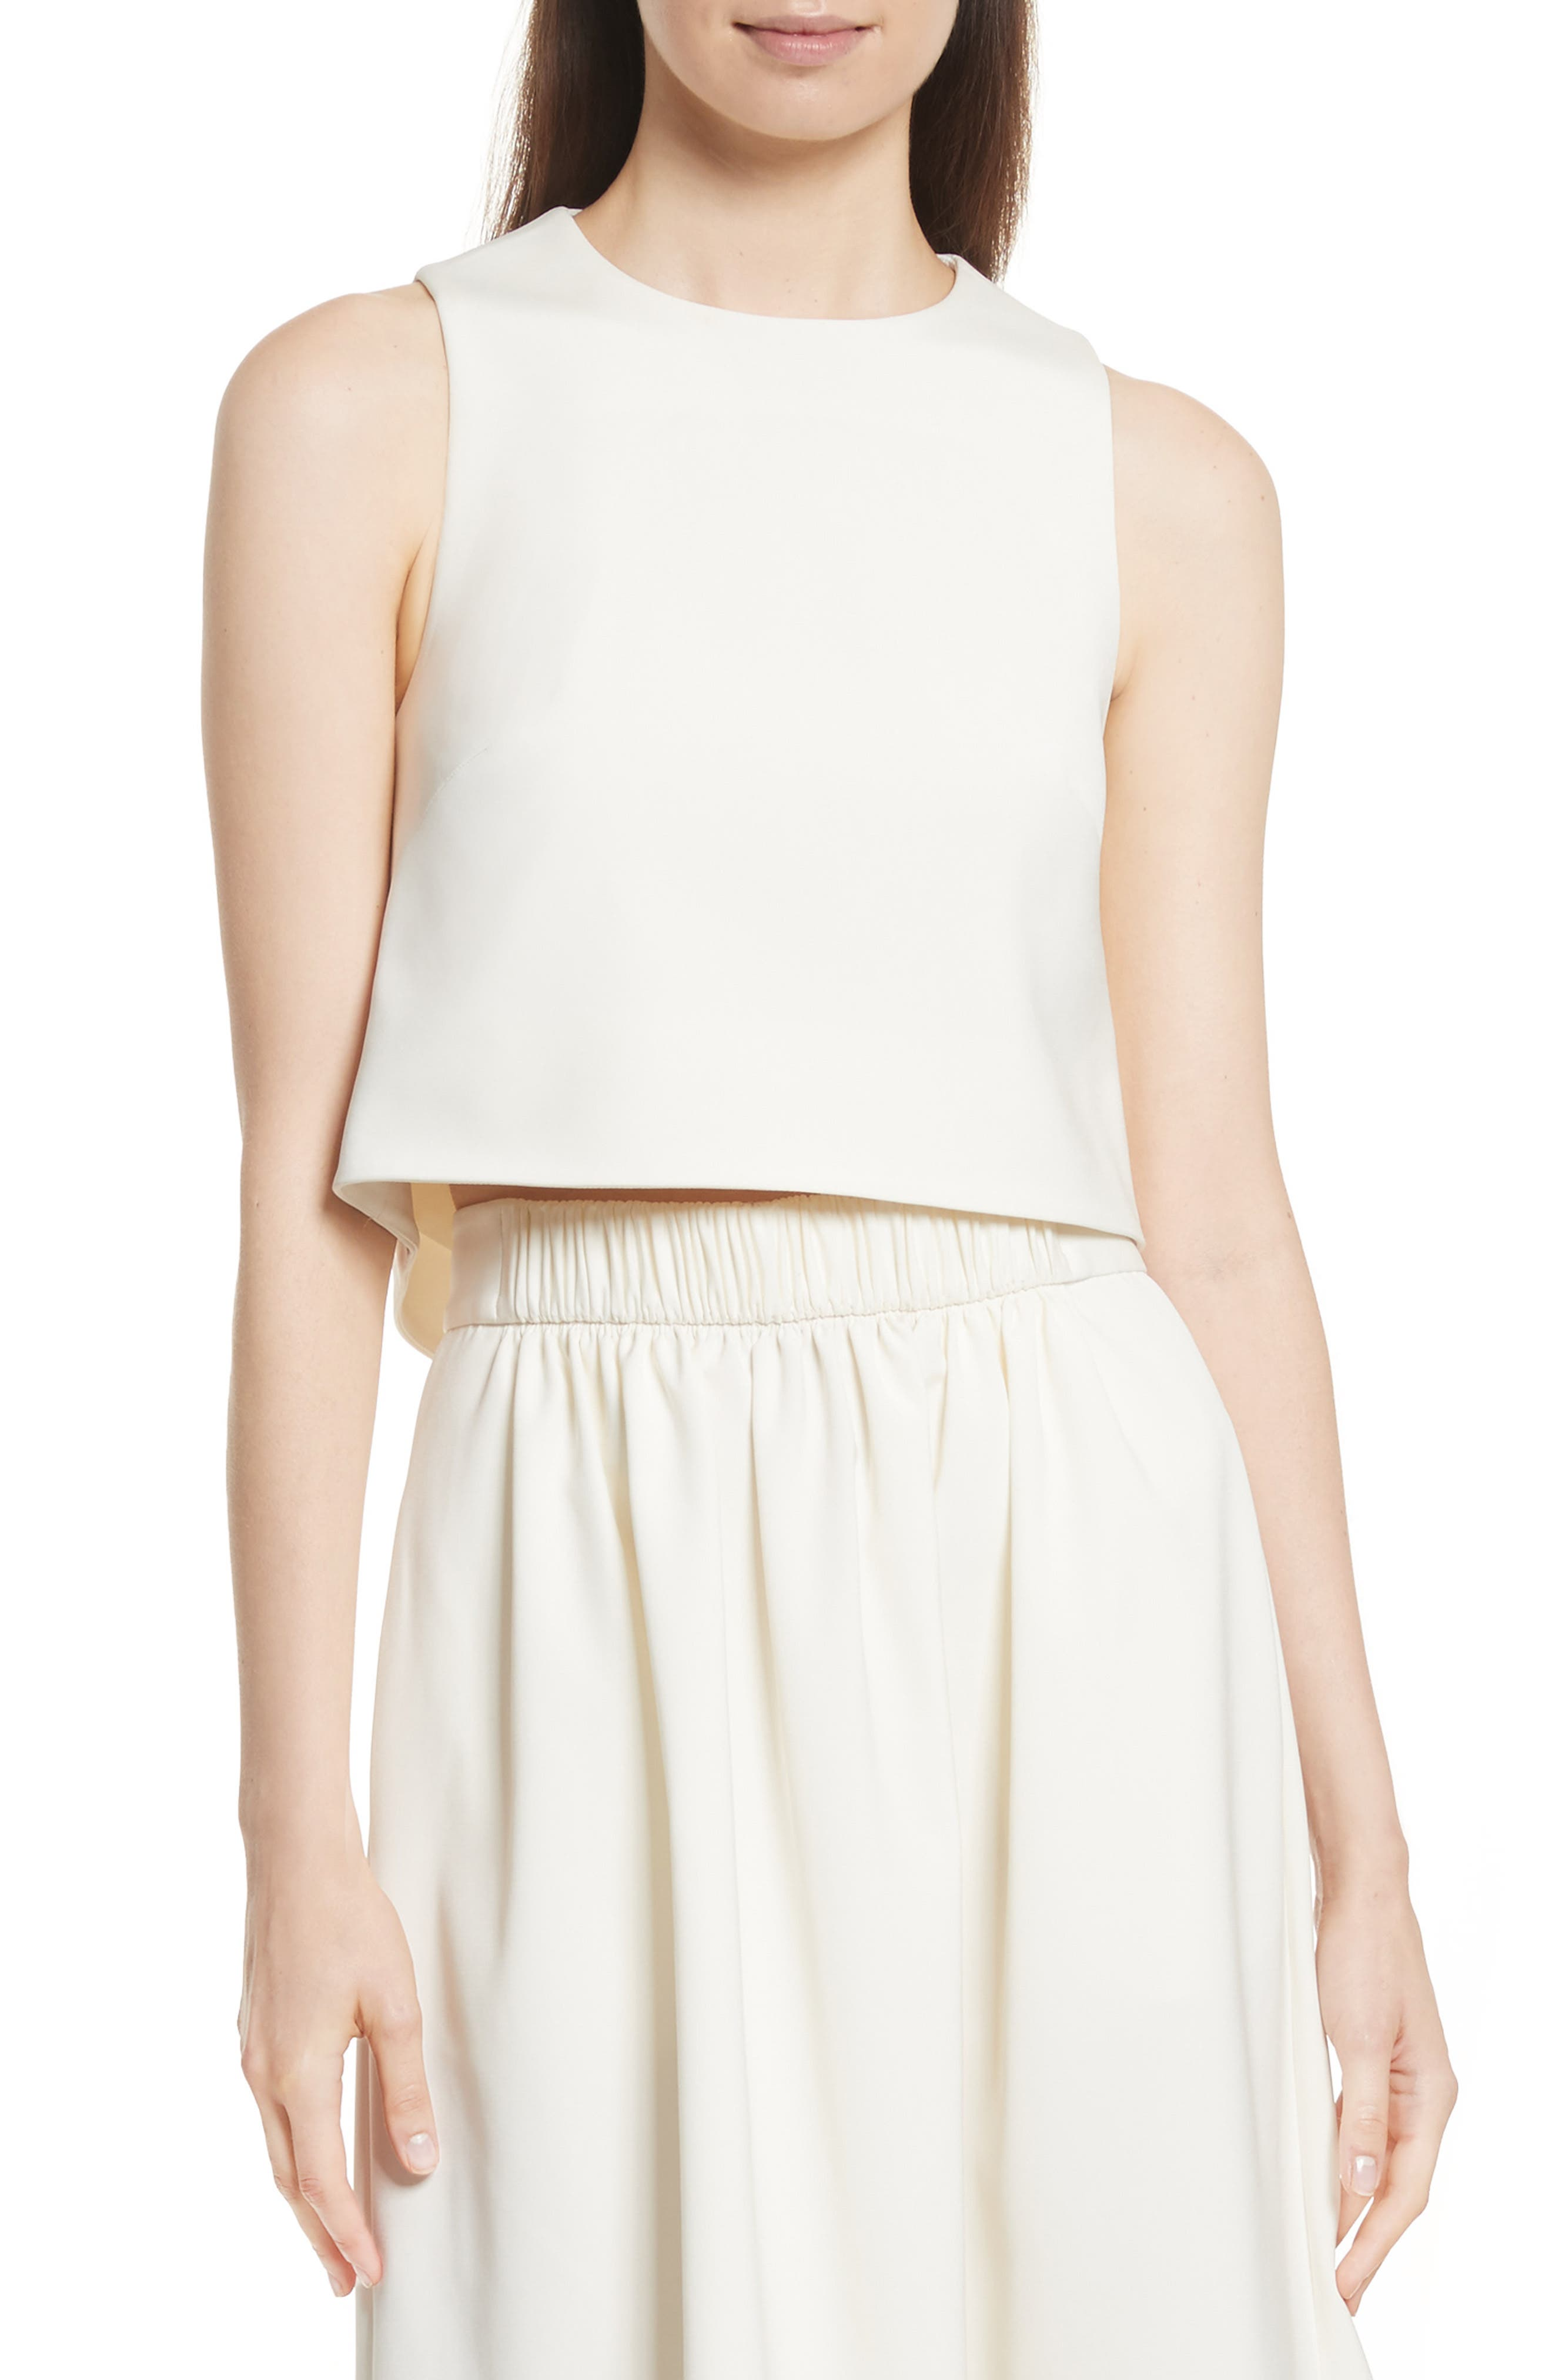 Alternate Image 1 Selected - Tibi Cutout Back Stretch Faille Top